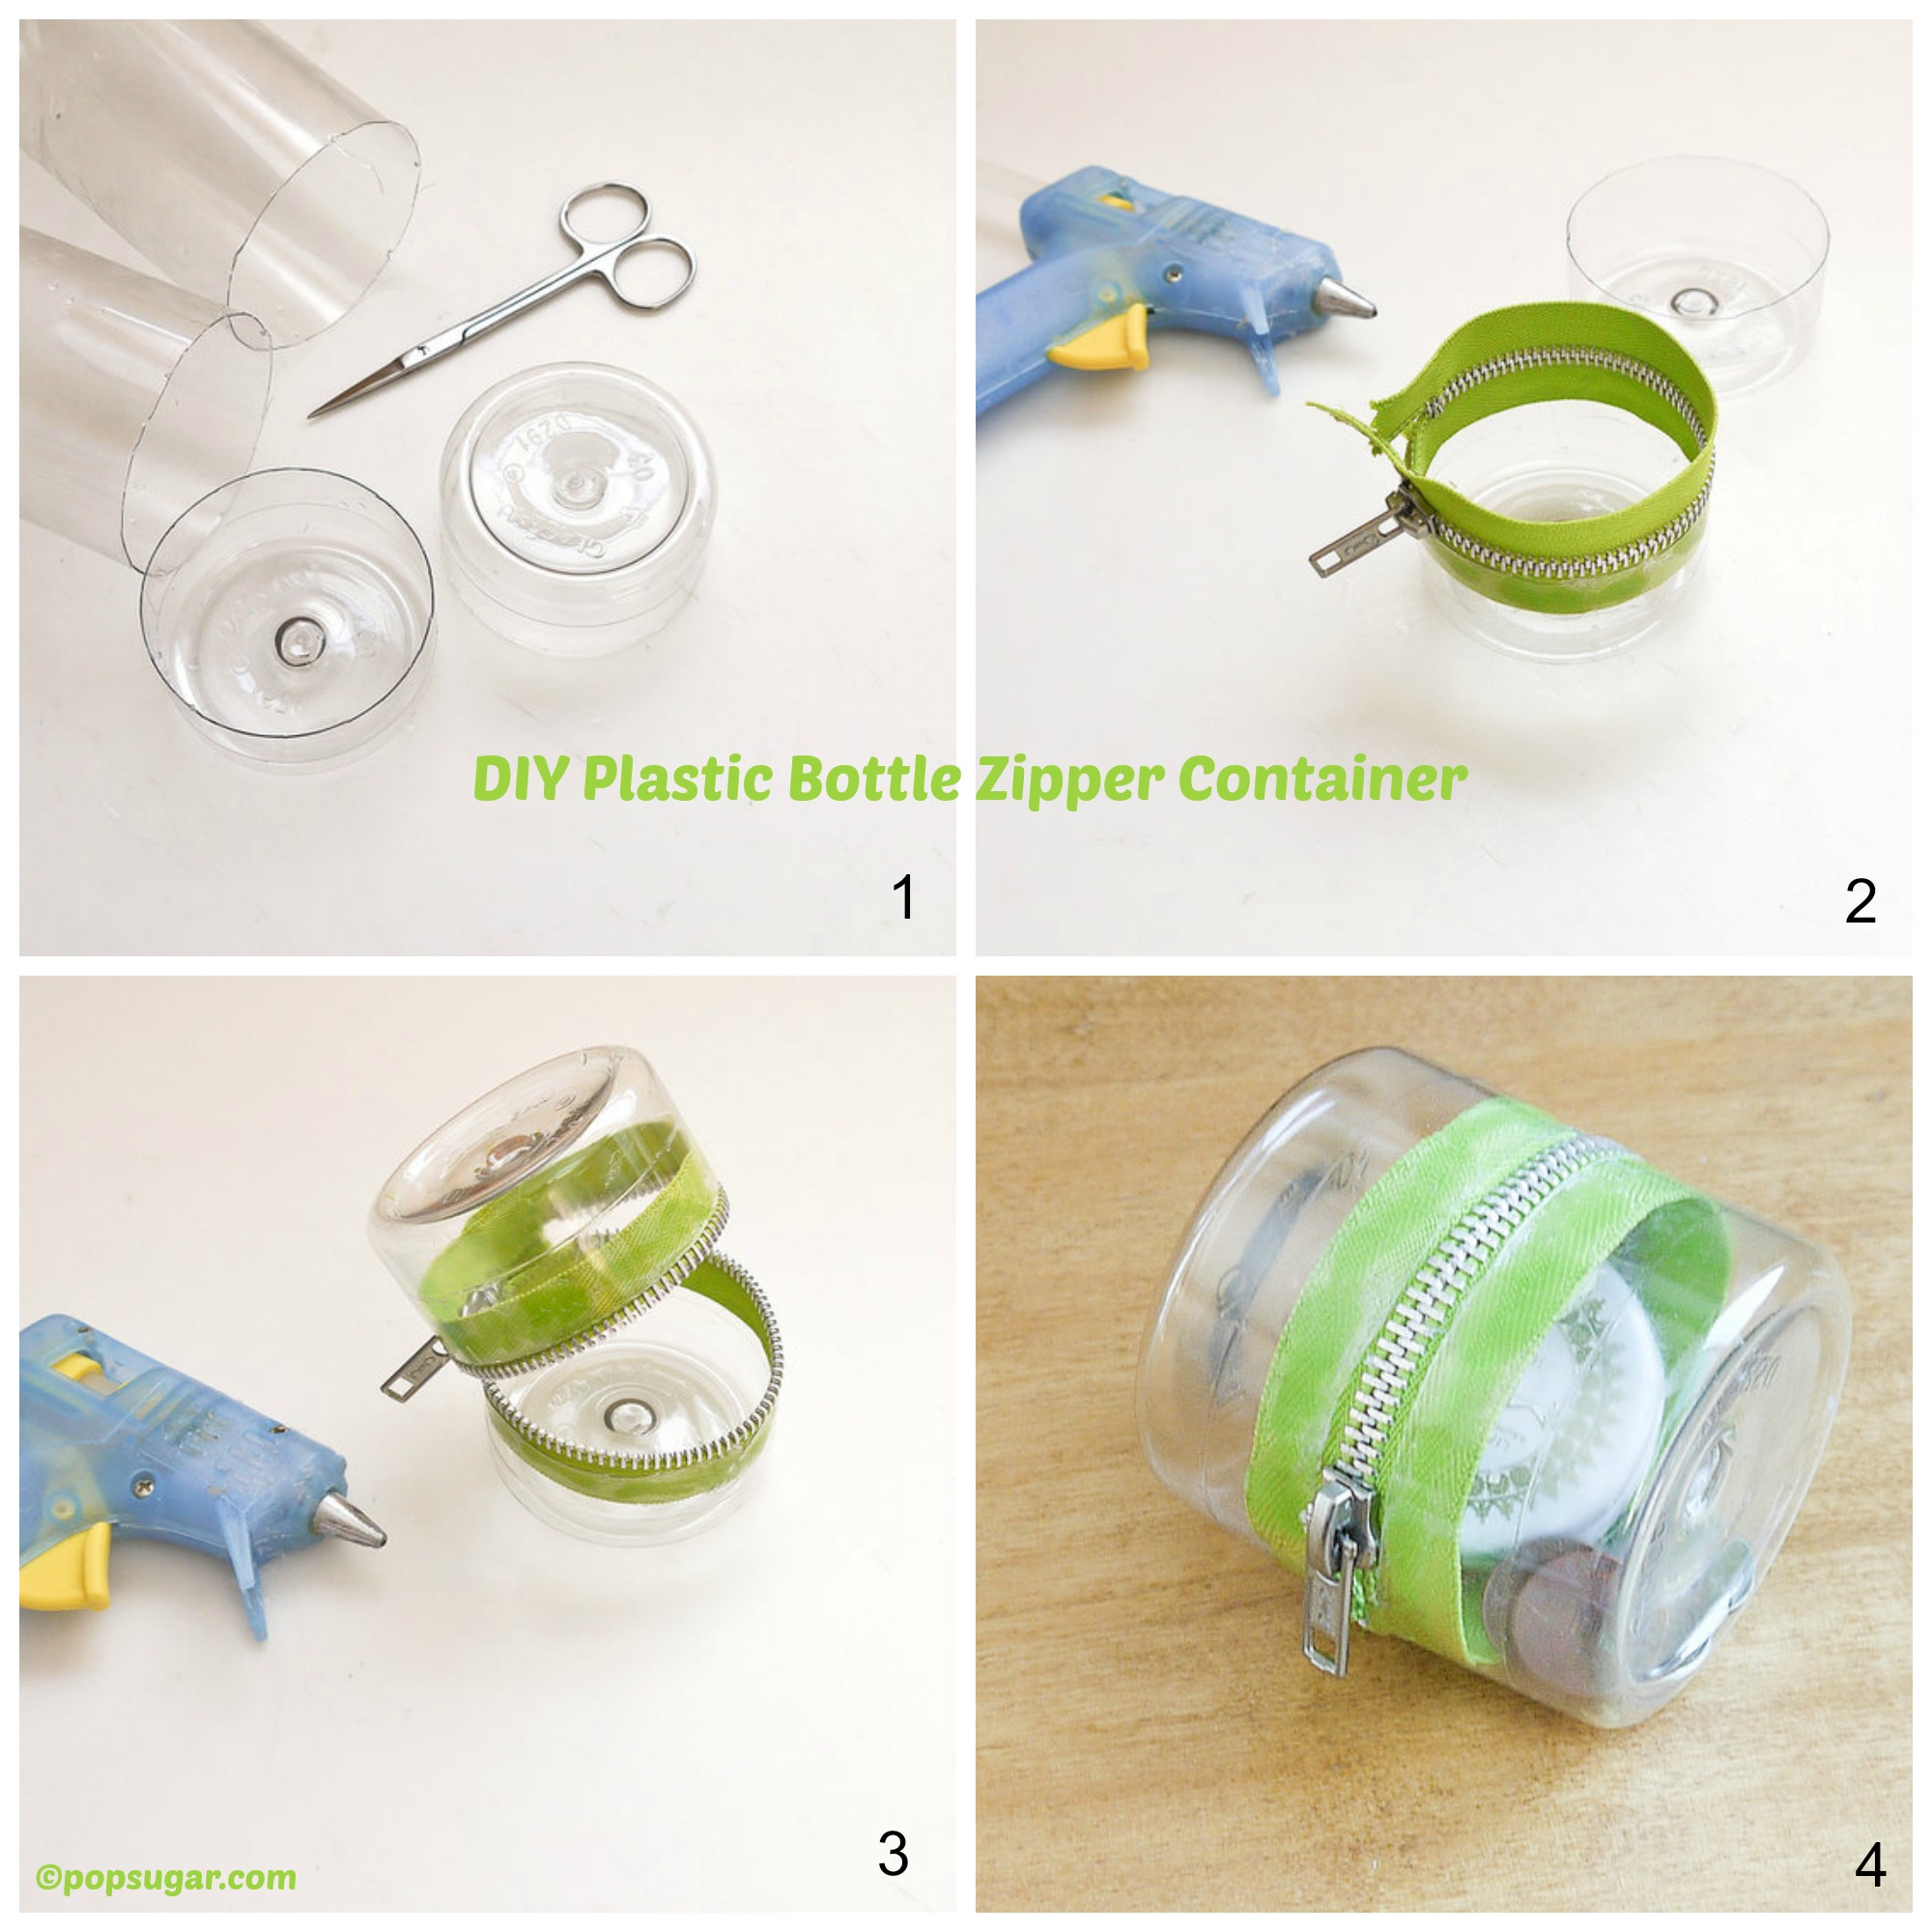 How to make a Plastic Bottle Zipper Container